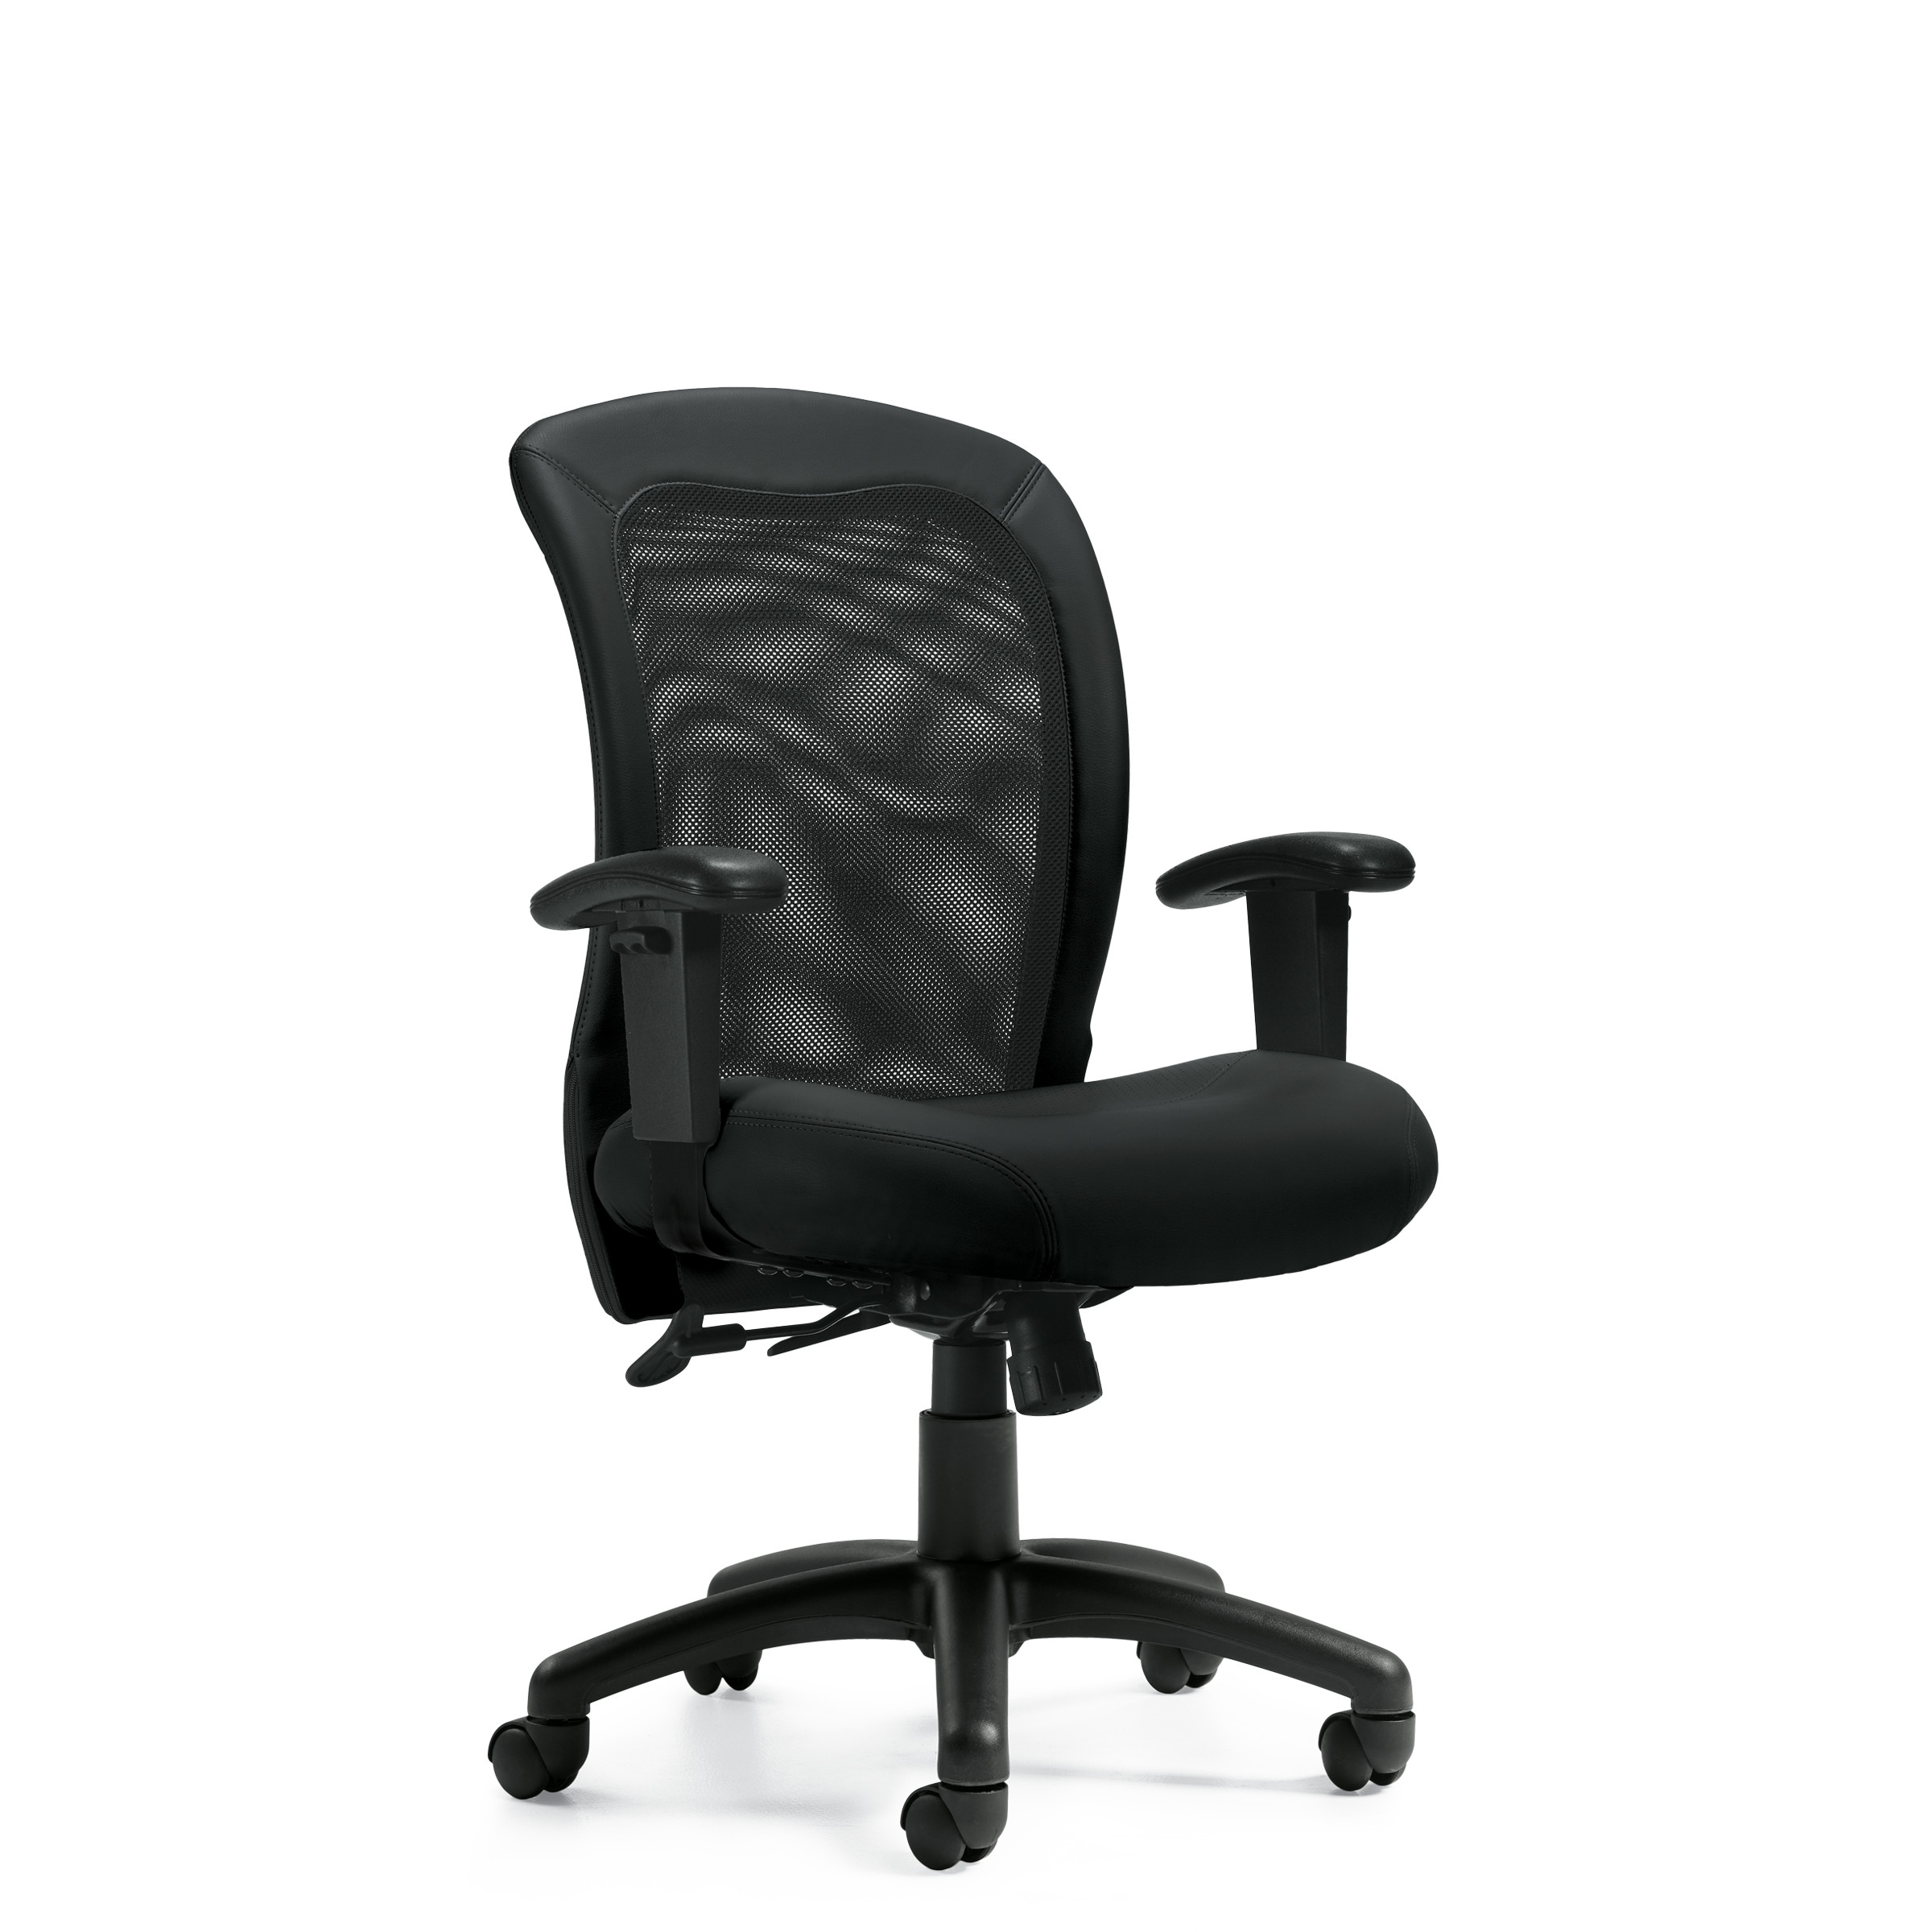 OTG Luxhide Adjustable Mesh Back Ergonomic Chair #OTG11692